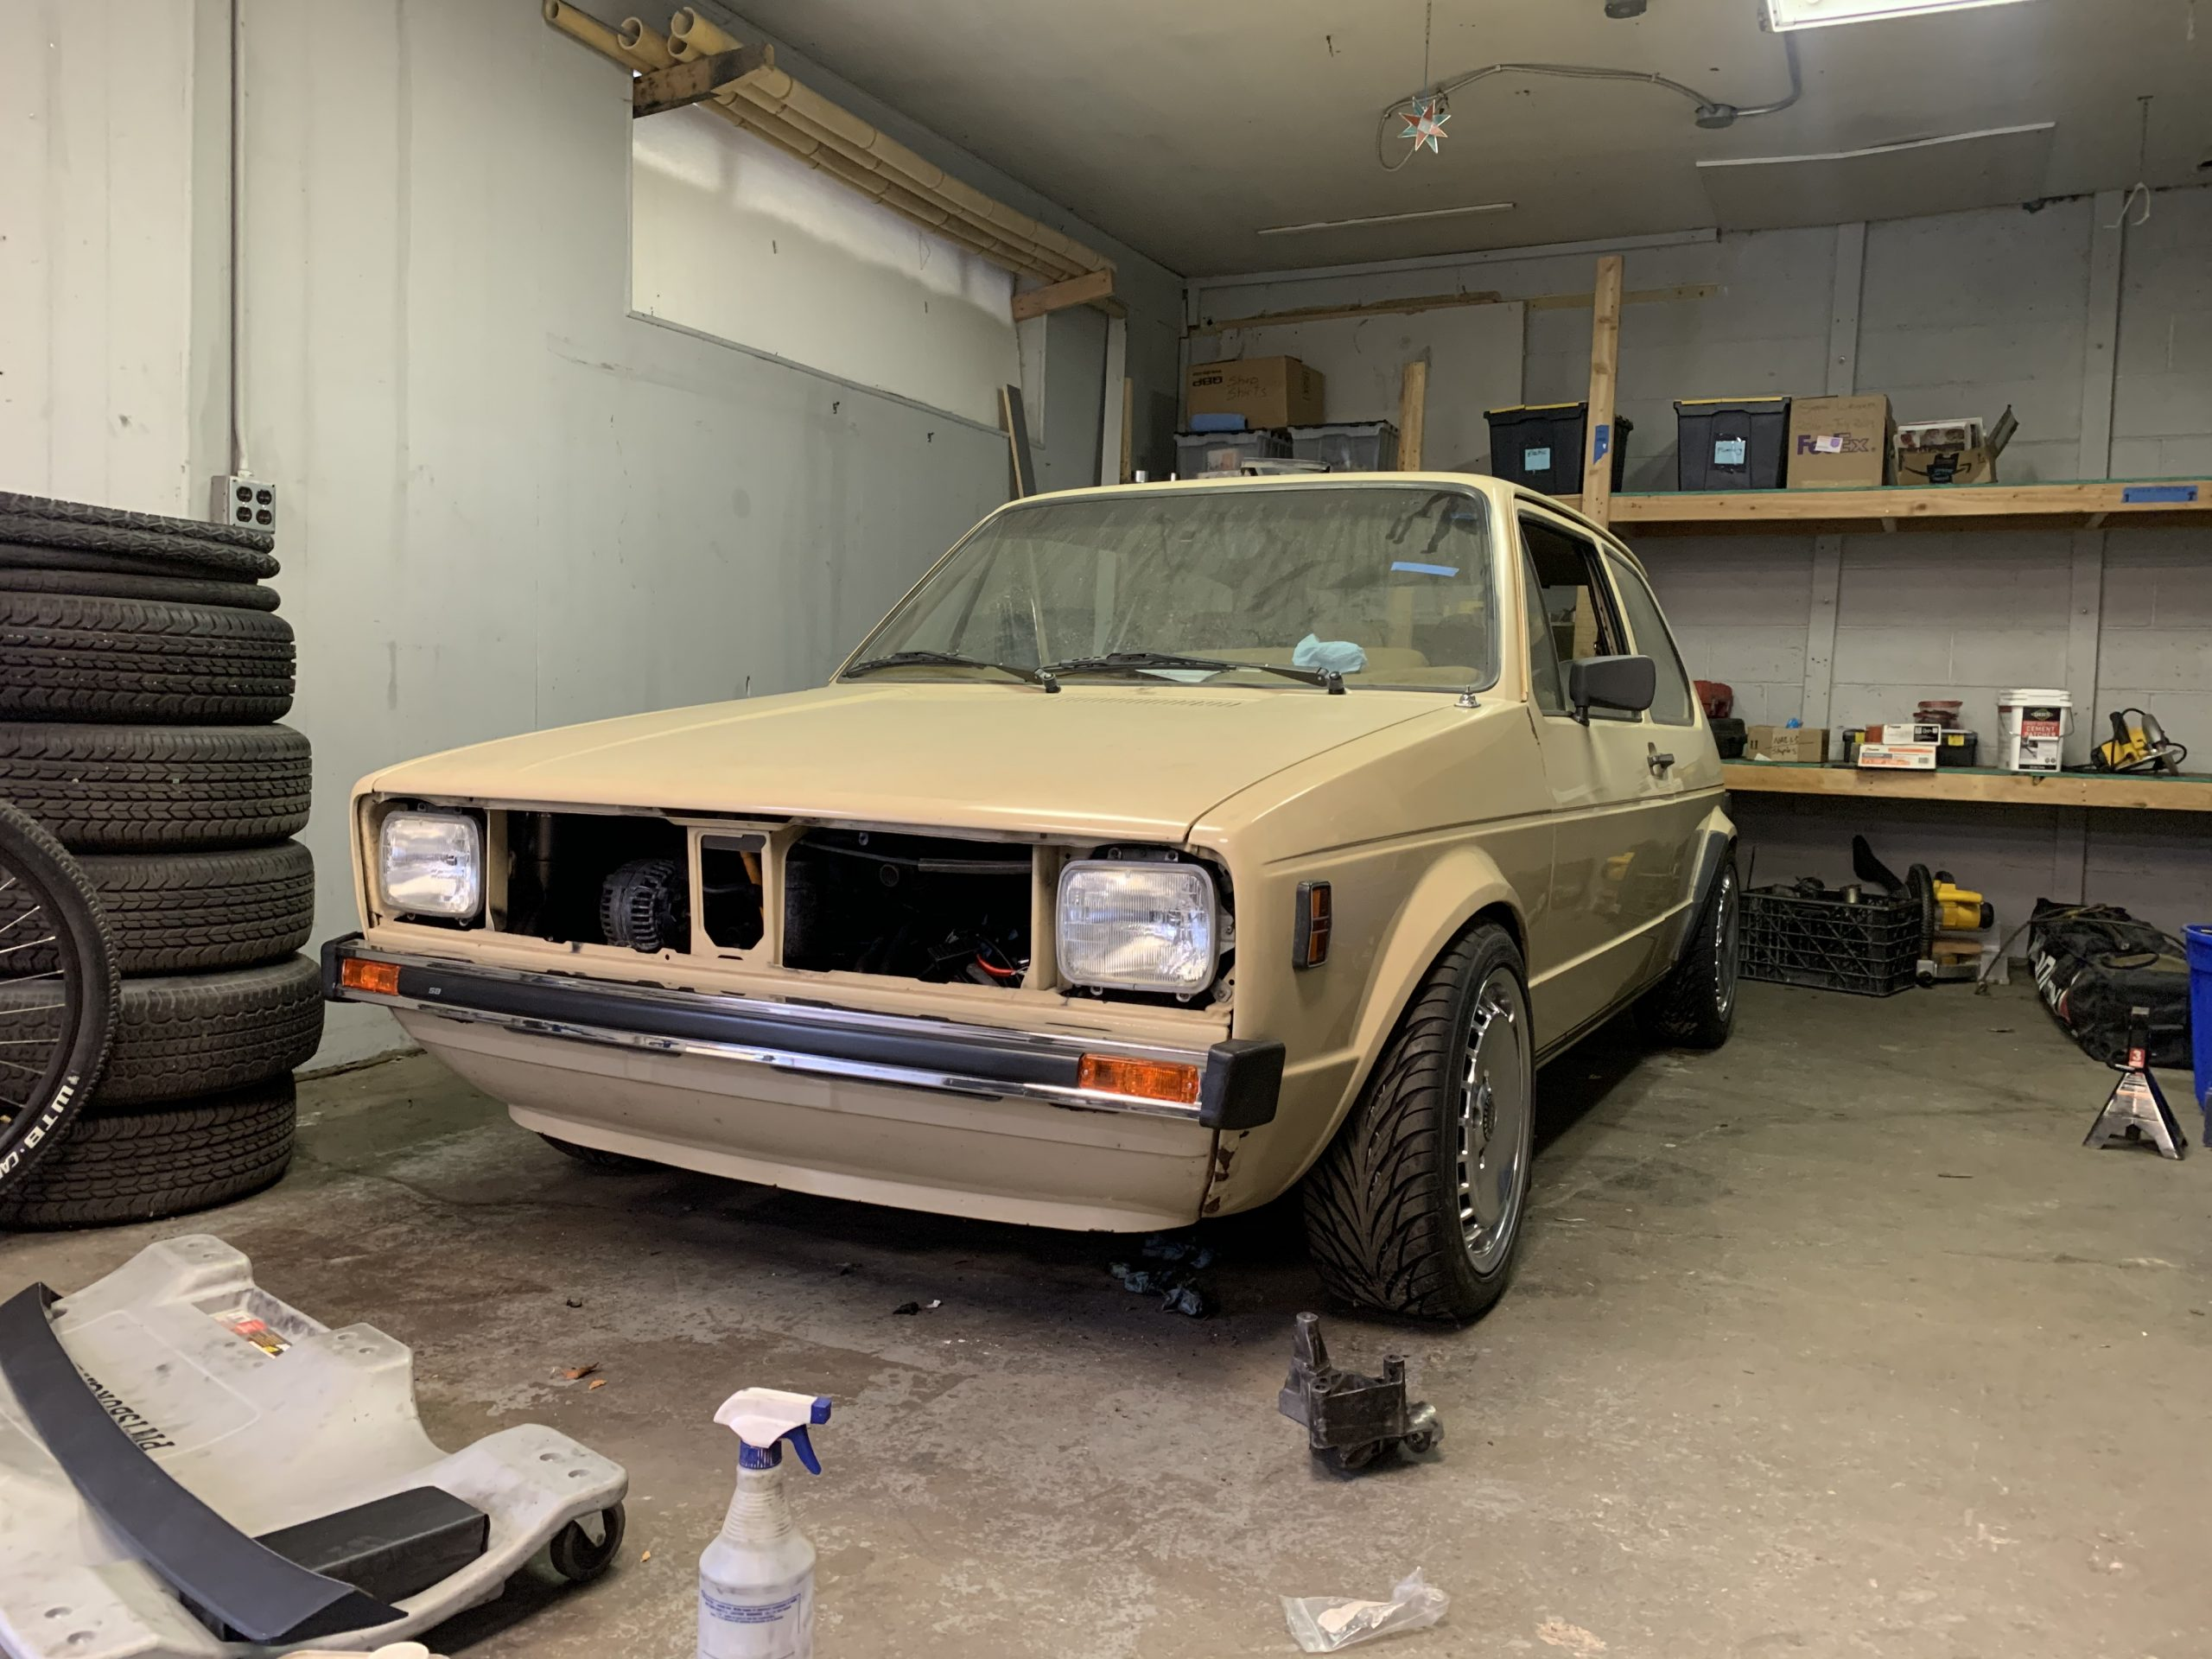 1980 VW Rabbit TDI swap before splitter front Nov 09, 11 27 07 AM